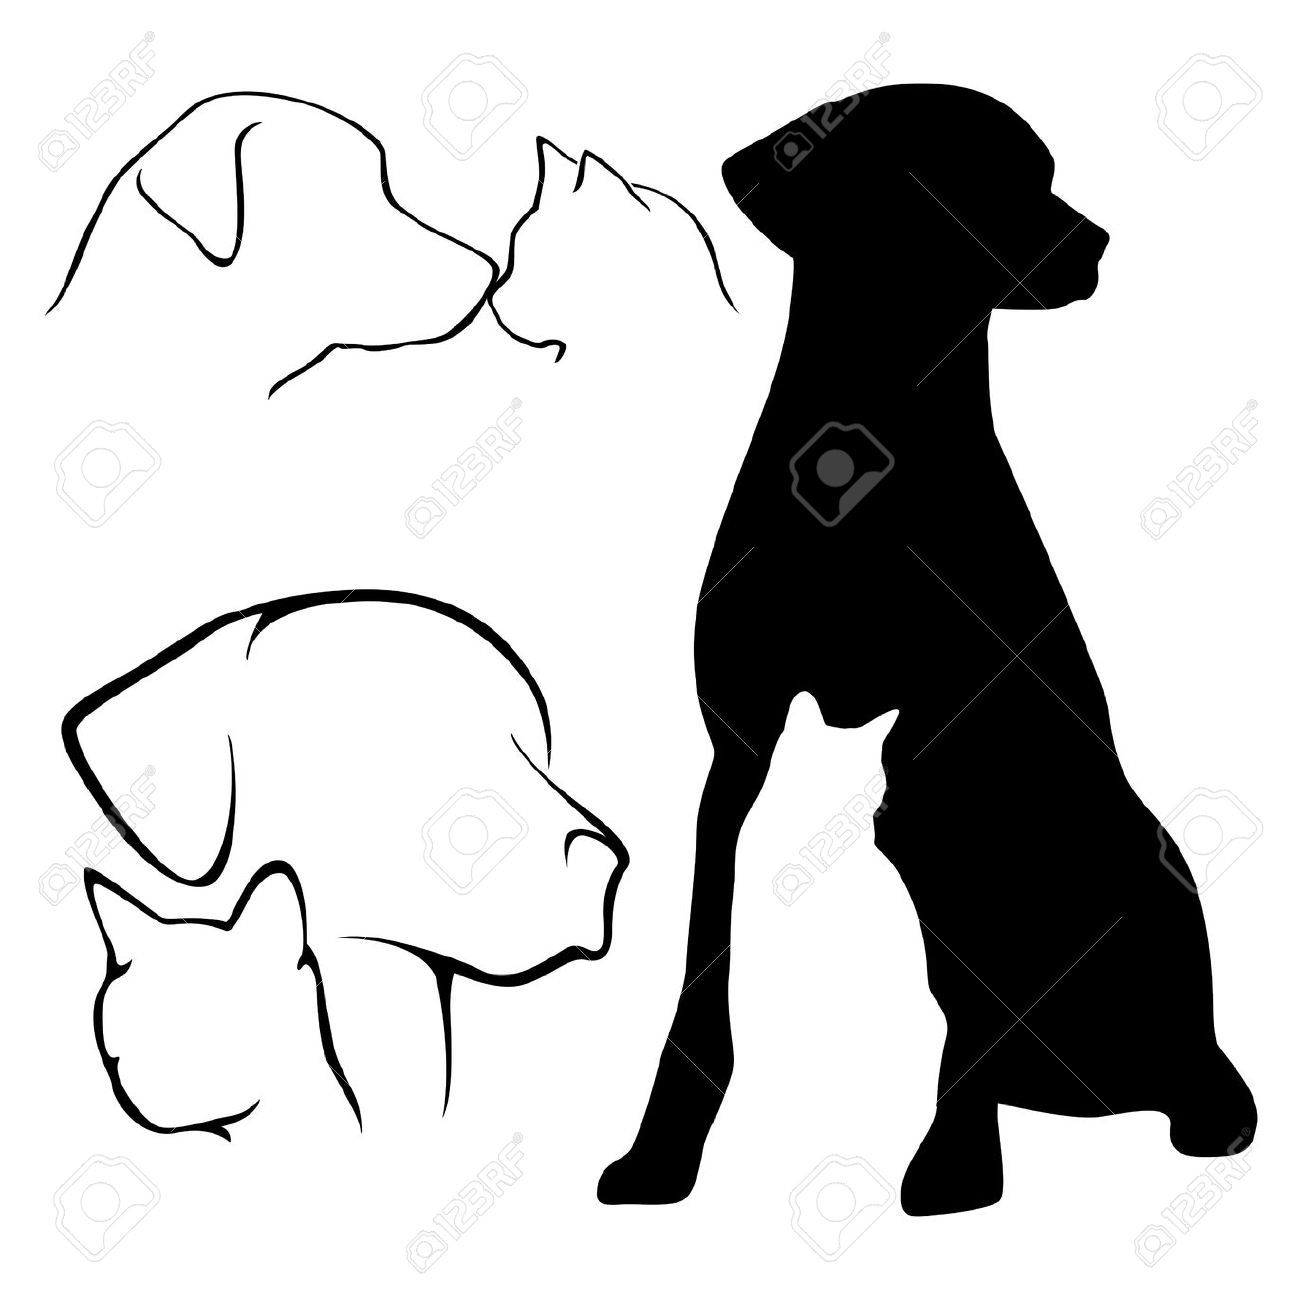 labrador silhouette google search patterns for crafts pinterest labradors tattoo and. Black Bedroom Furniture Sets. Home Design Ideas